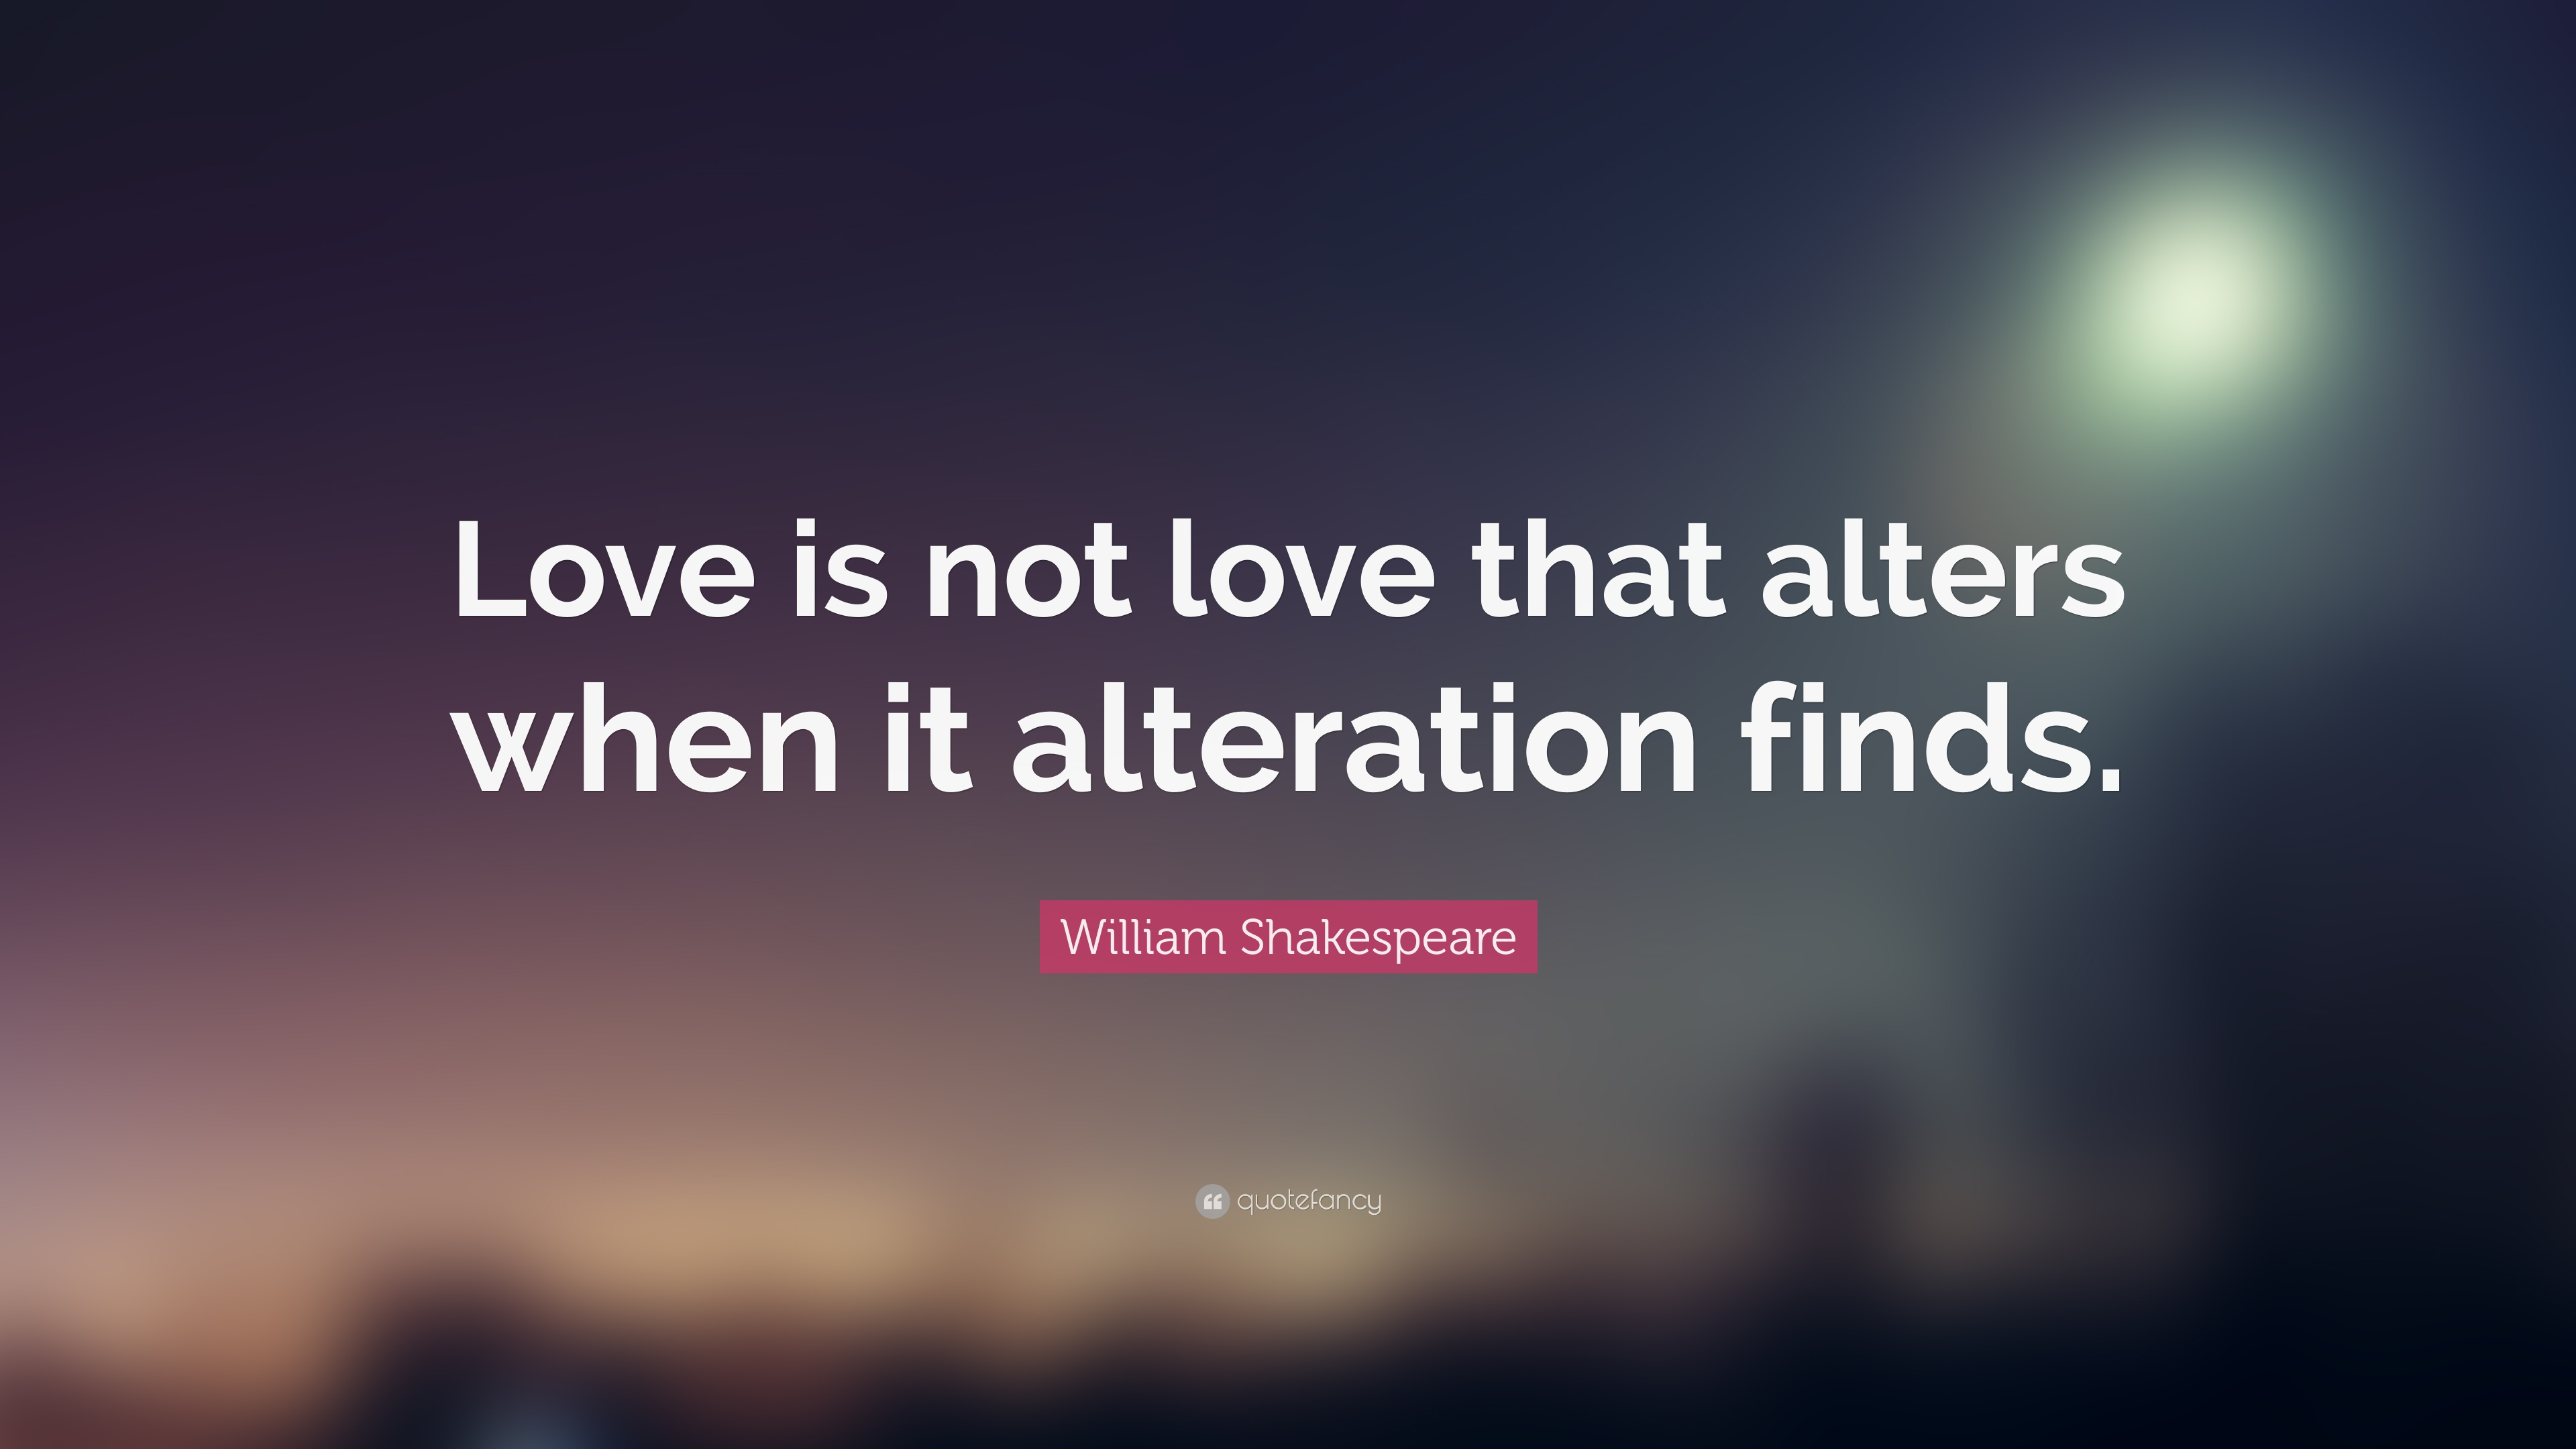 Shakespeare Quotes About Love William Shakespeare Quotes About Love  Bitami